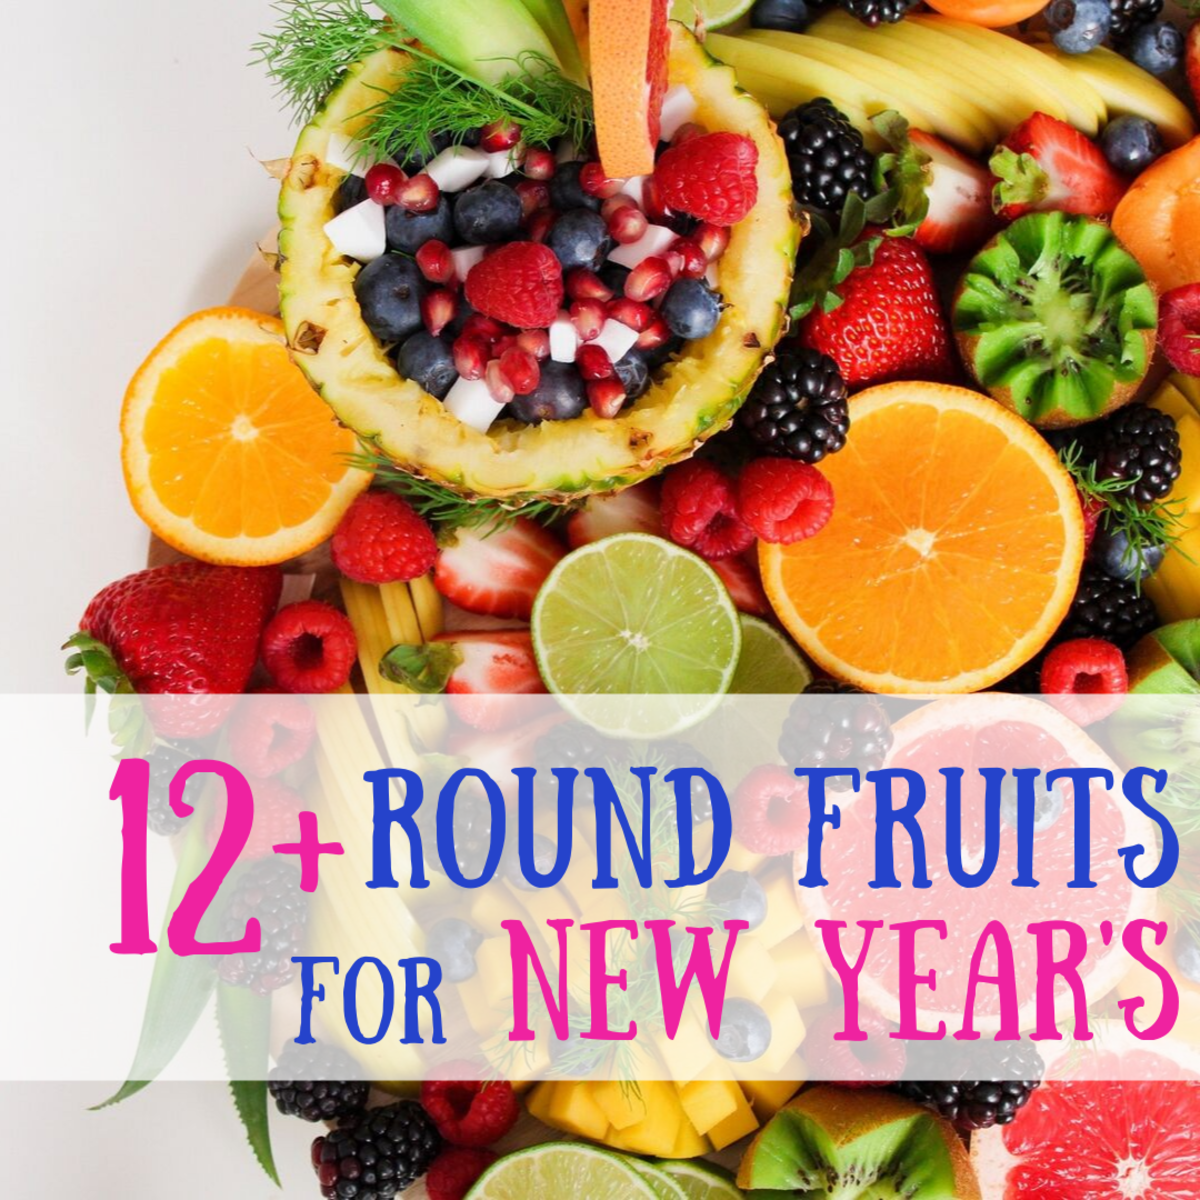 12+ Round Fruit Ideas for the Filipino New Year's Eve Tradition